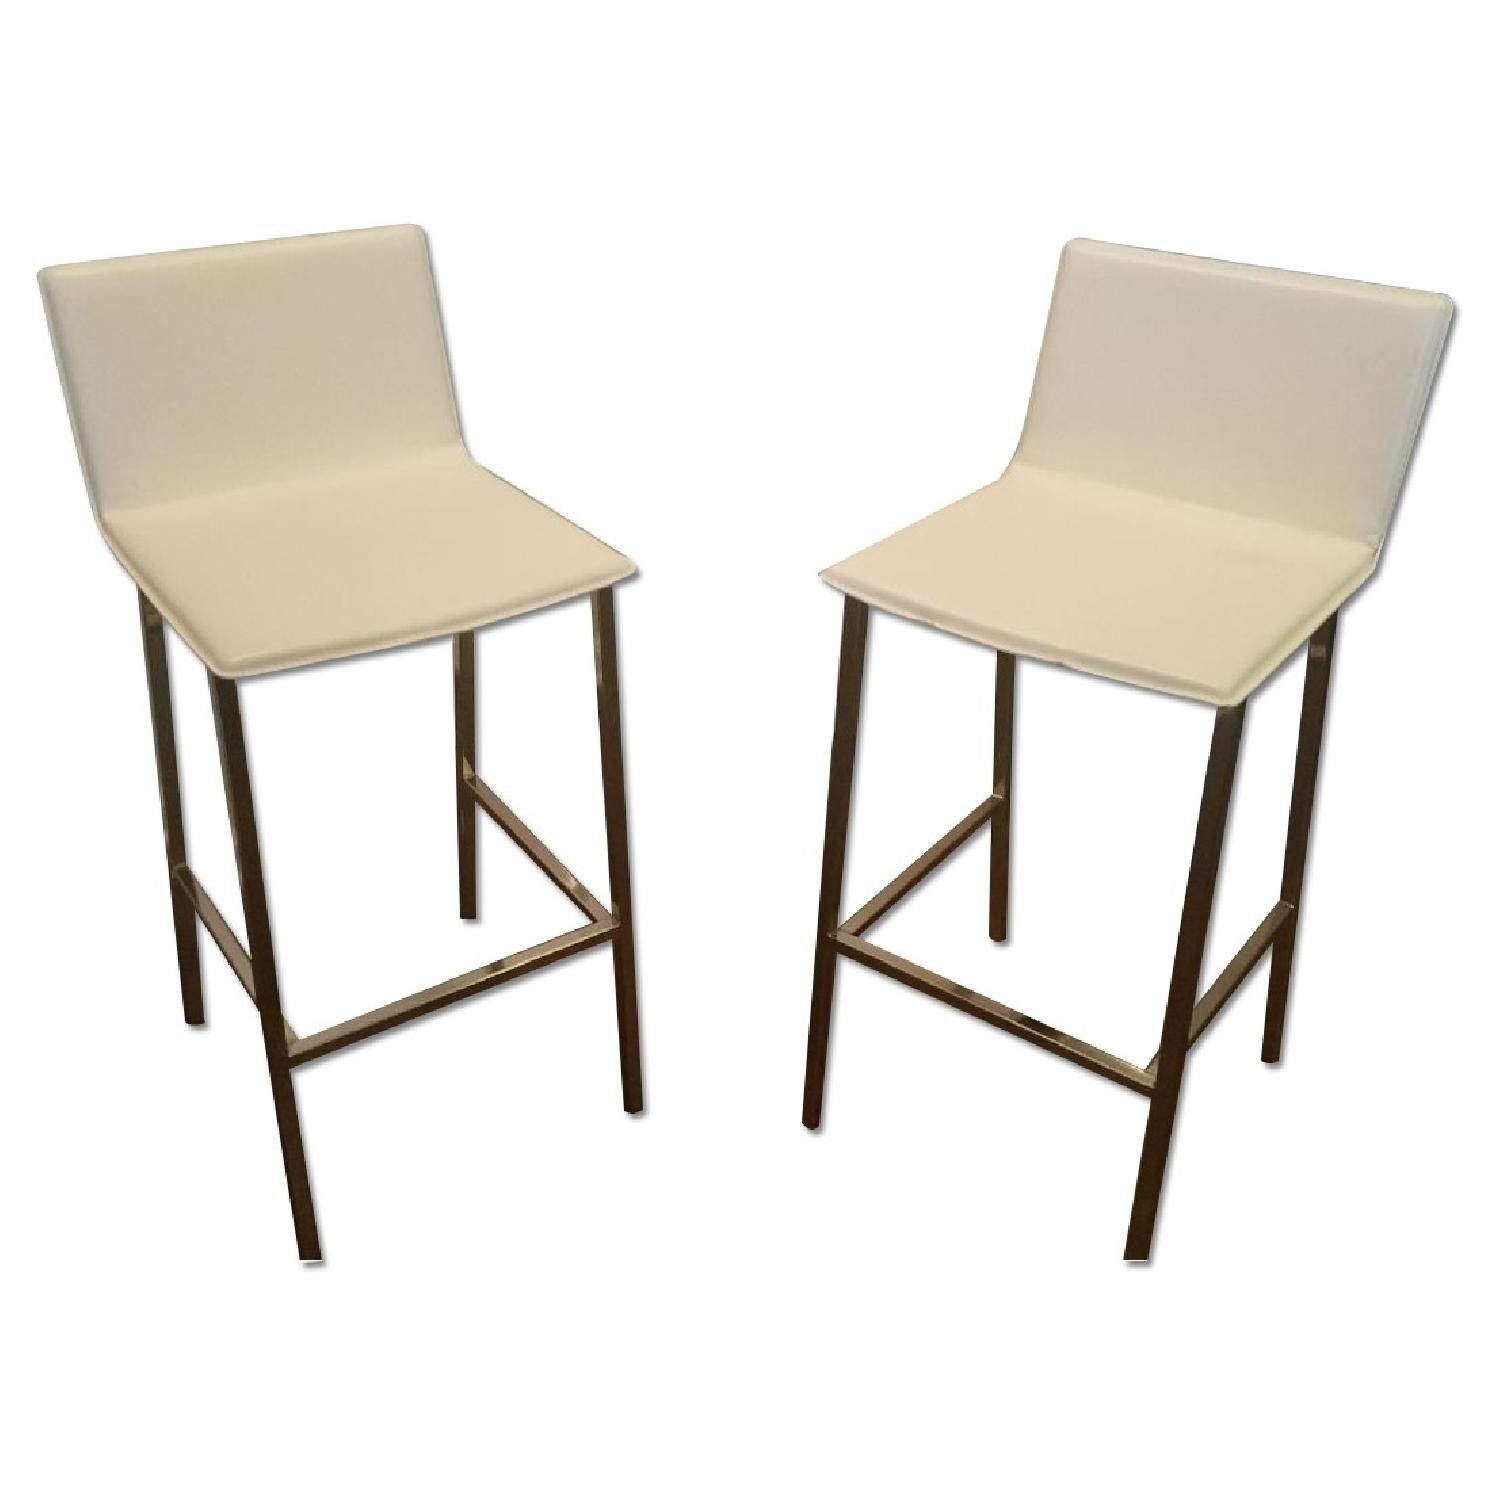 CB2 Phoenix Ivory Bar Height Chairs (set of 2) - image-2